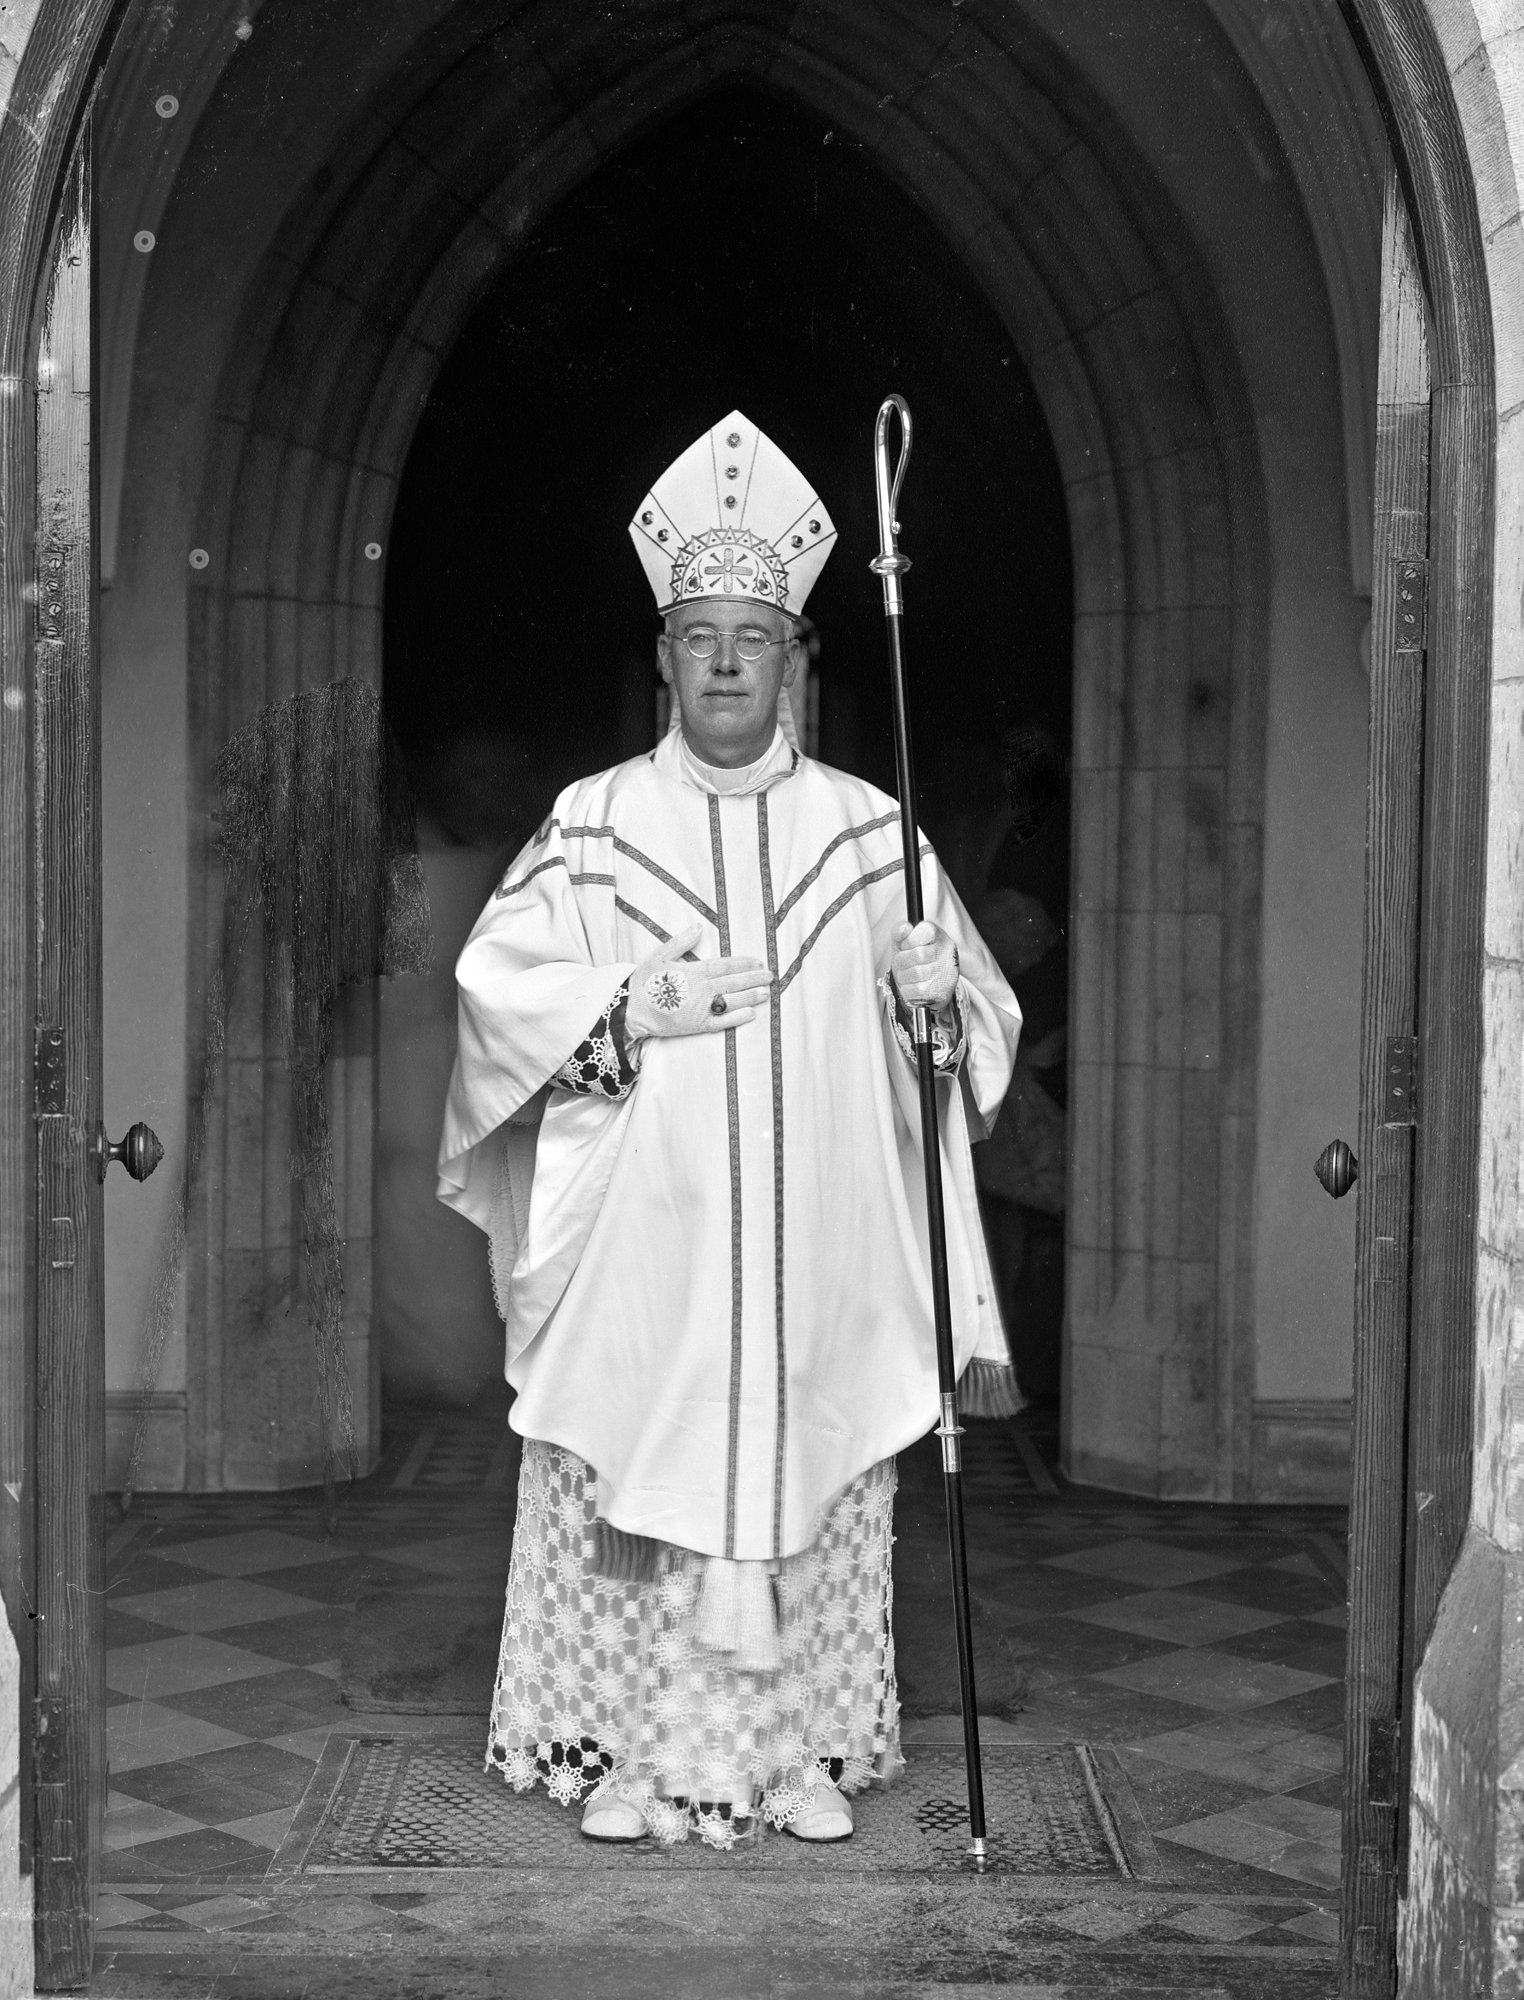 Rev. Cornelius Claffey, at church entrance, full-length portrait